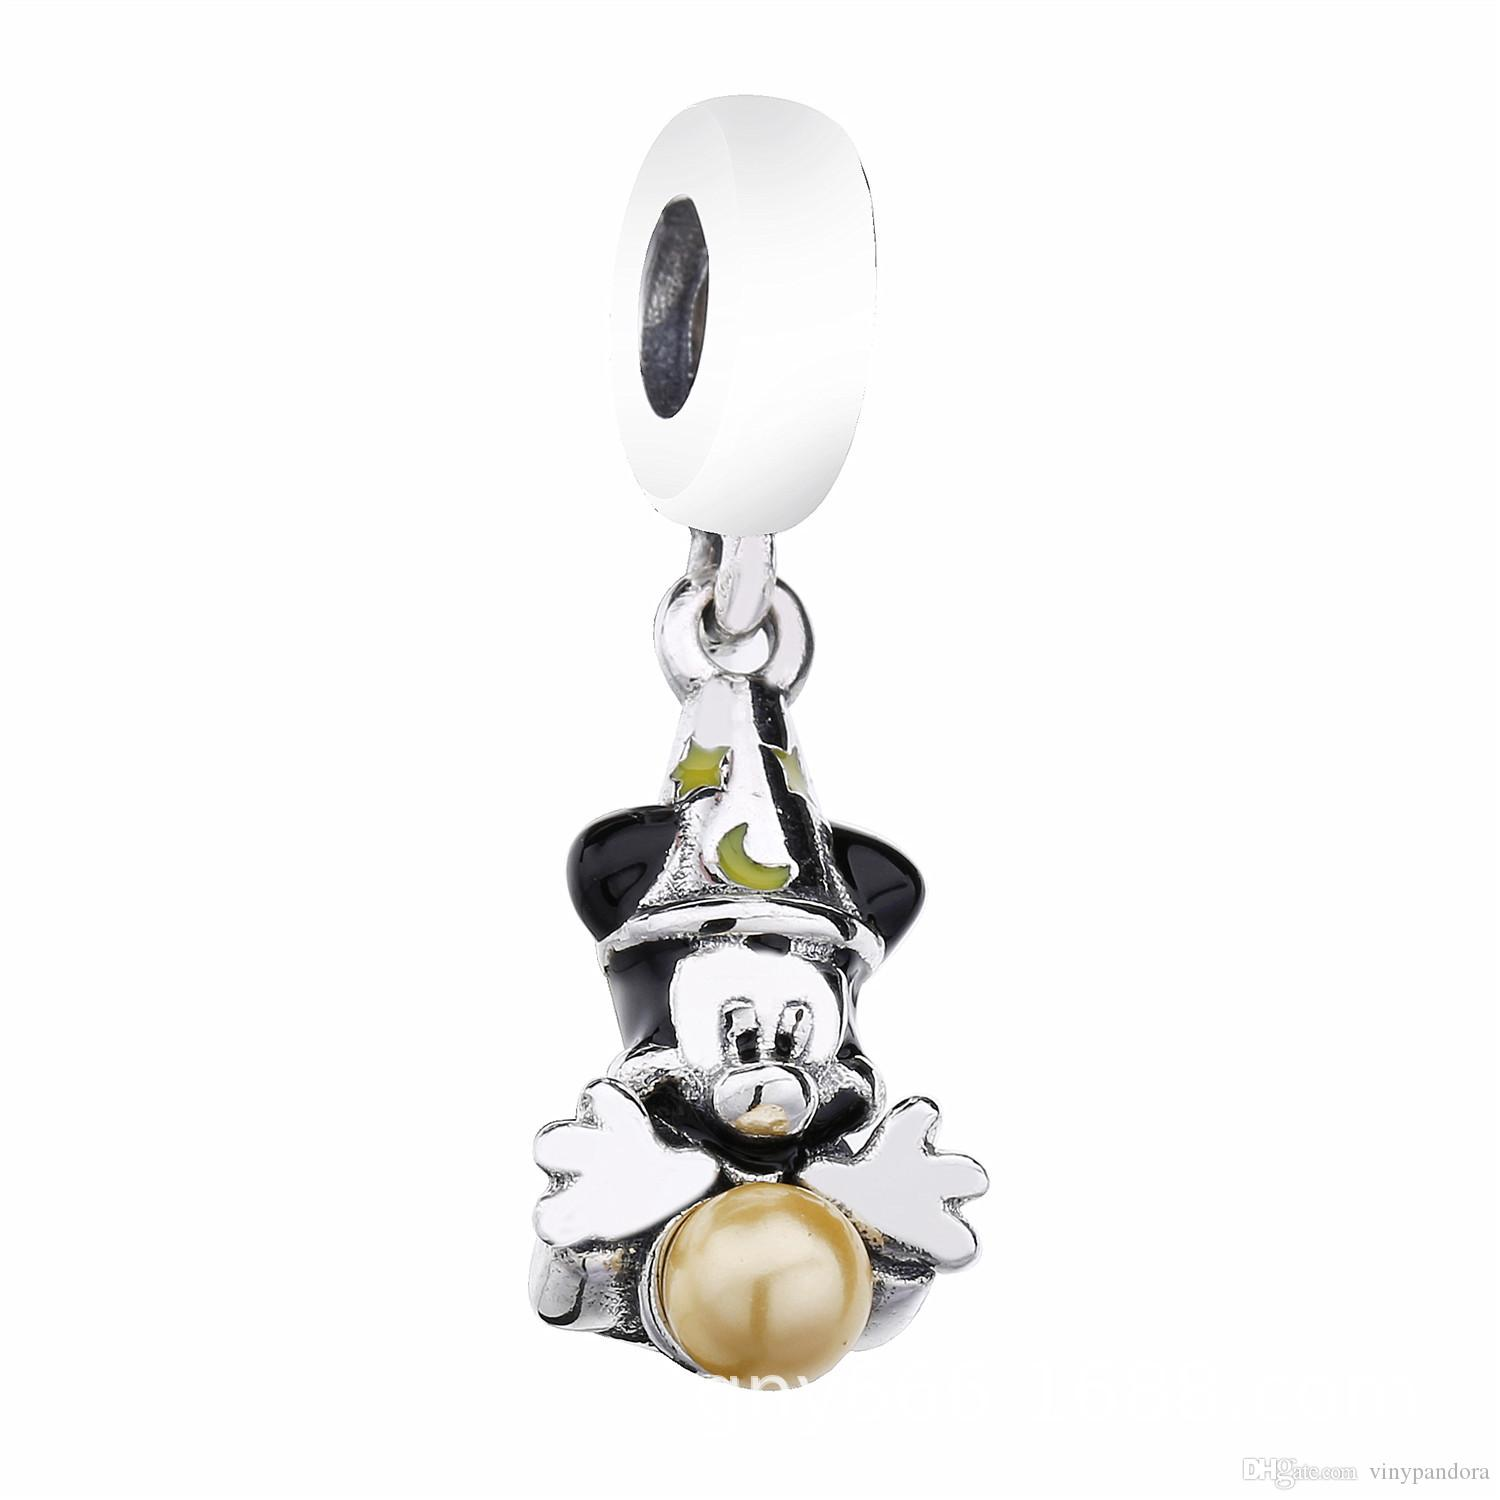 4fd660fdb 2019 100% 925 Sterling Silver Sorcerer MK Dangle Charm Bead Fits European  Pandora Jewelry Charm Bracelets From Vinypandora, $9.95 | DHgate.Com